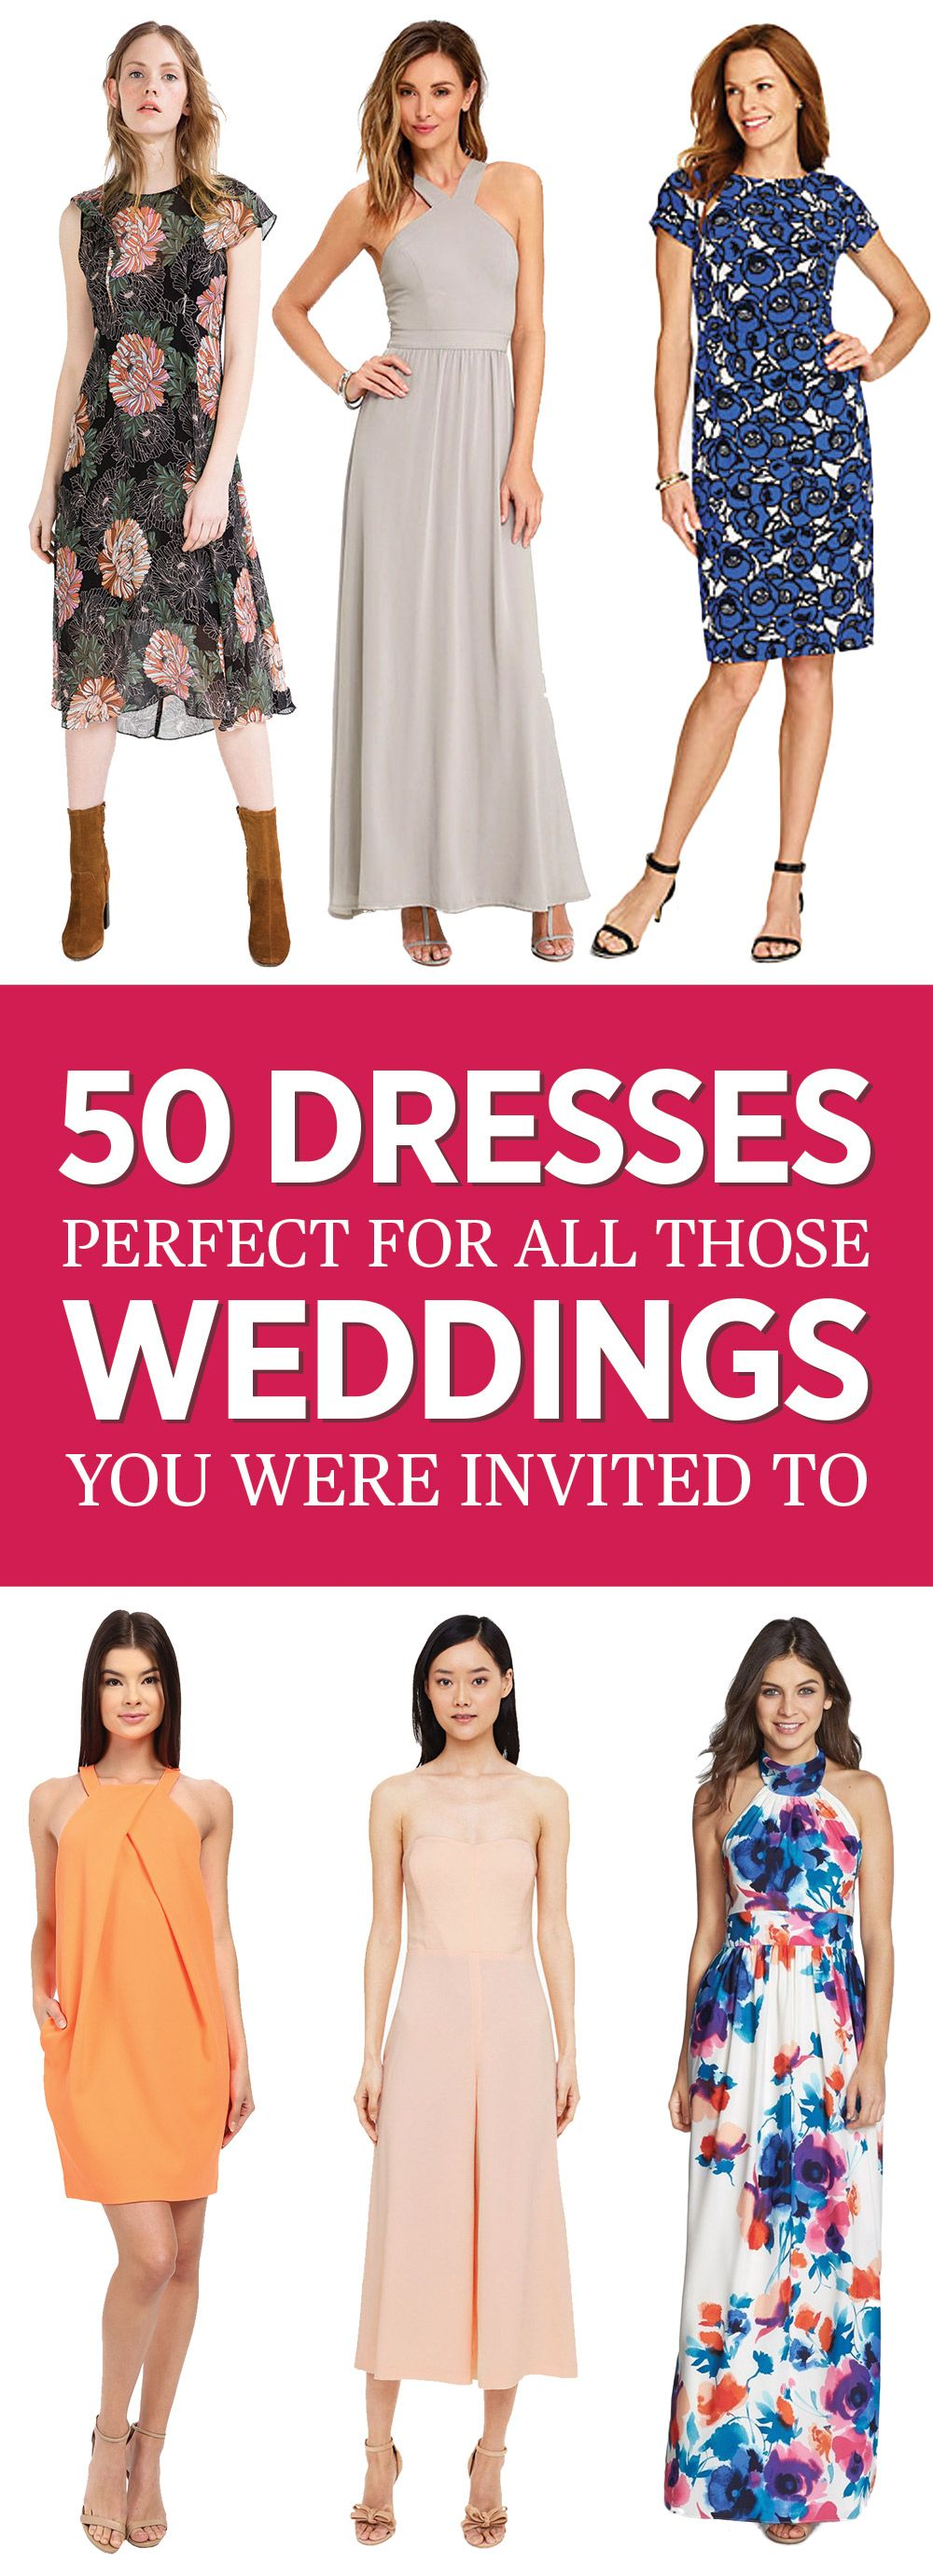 Dresses to wear to summer wedding   Dresses That Couldnut Be More Perfect for All Those Weddings On